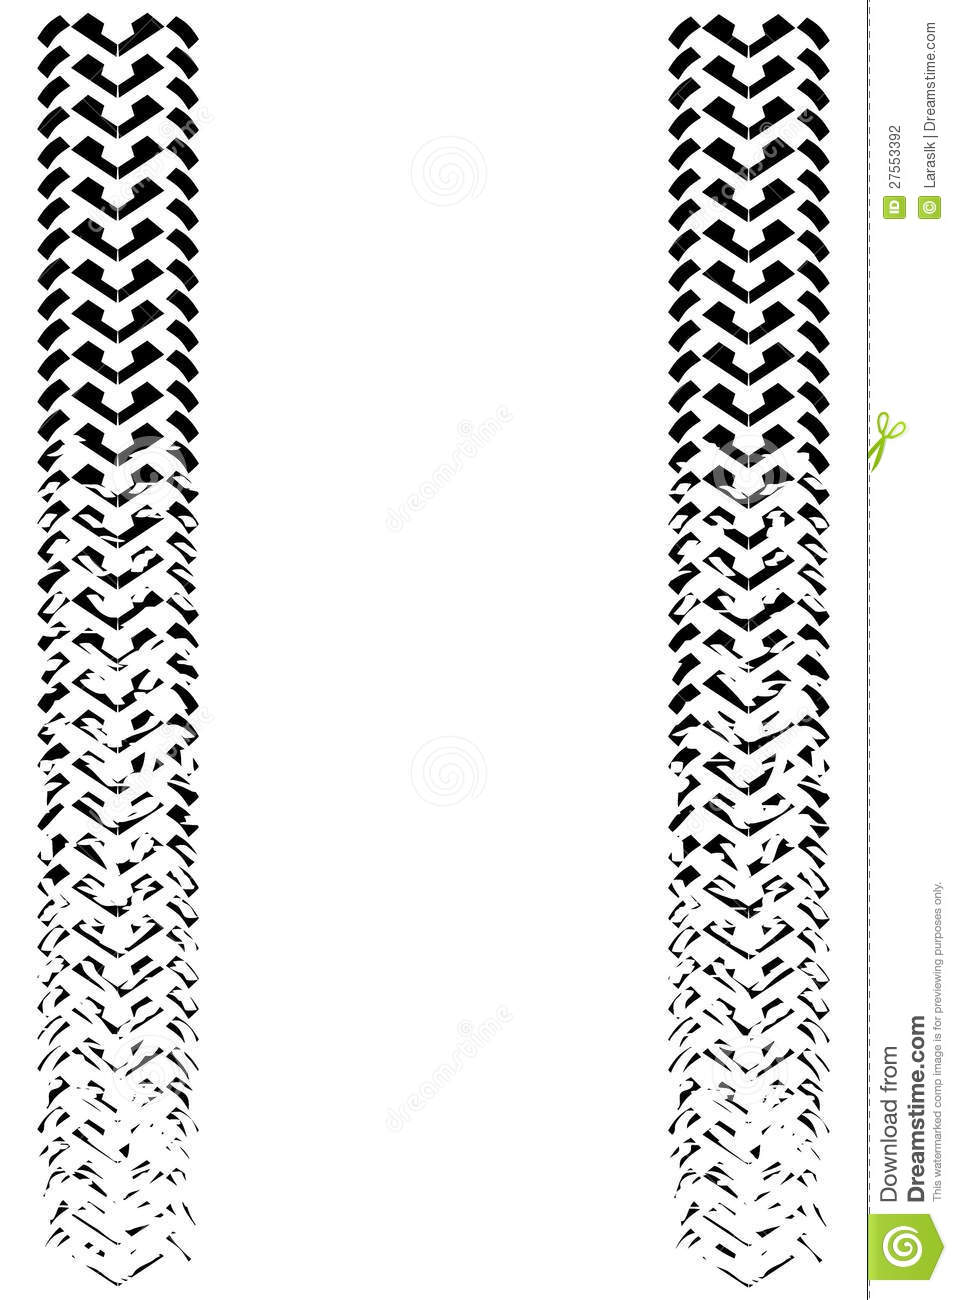 99192 Free Vector Racing Flags in addition Auto Gesetzt 551909 additionally Search also Stock Photography Fading Tire Tracks Image27553392 furthermore Silhouette Of A Bicycle Wheel Vector 7065757. on car with tire illustration